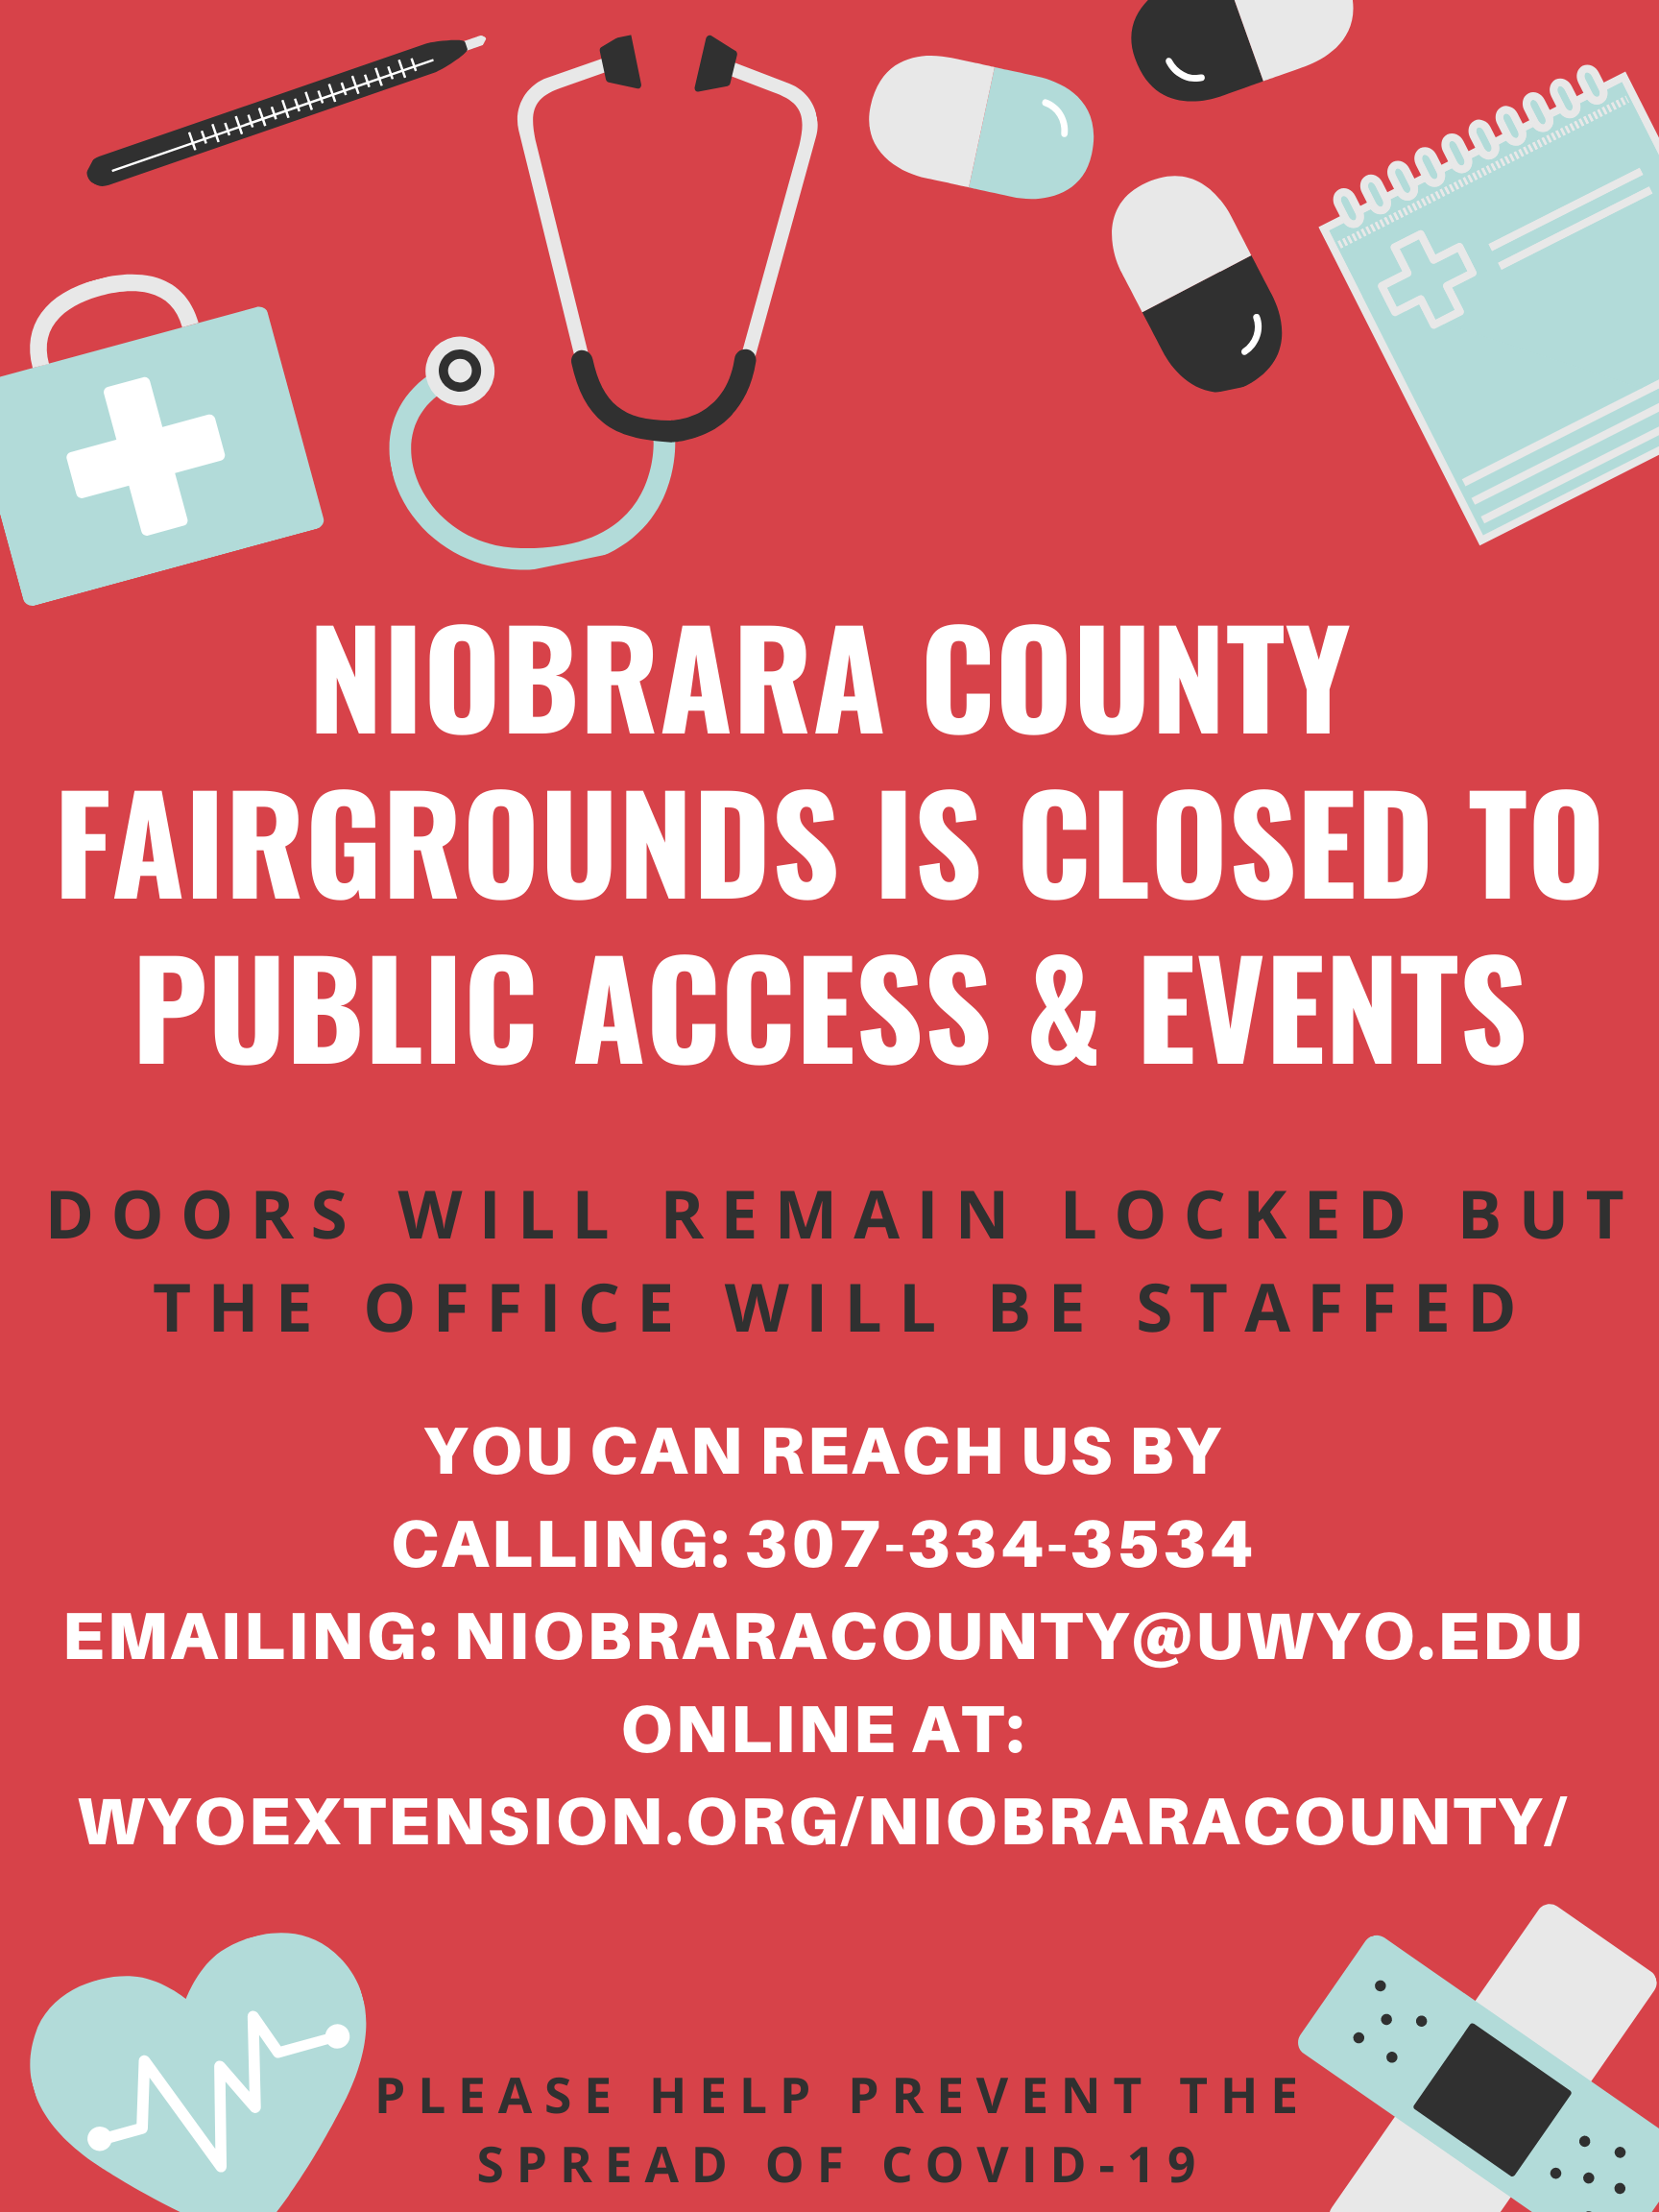 Fairgrounds closed to public access and events